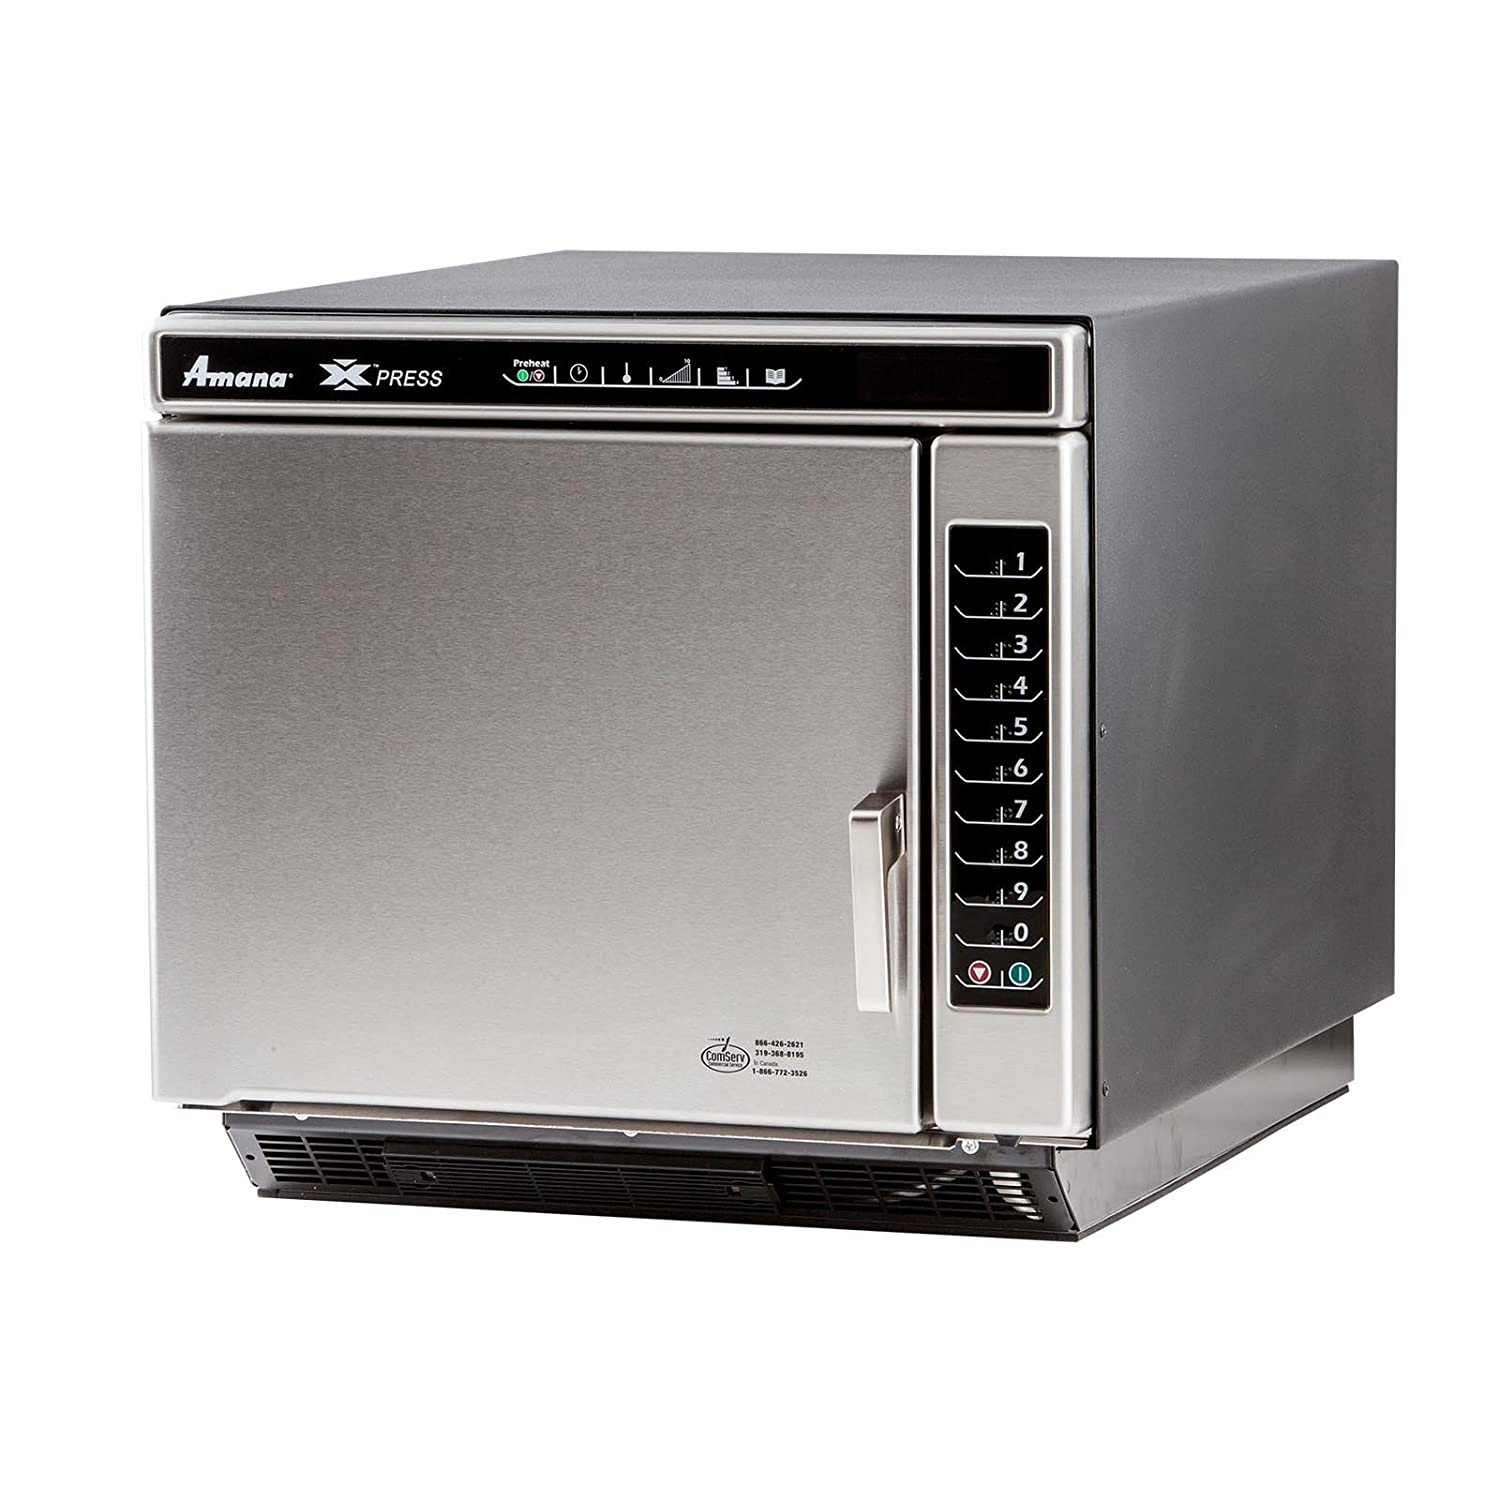 1.2cf Jetwave High Speed Ventless Microwave Oven 5300 Watts